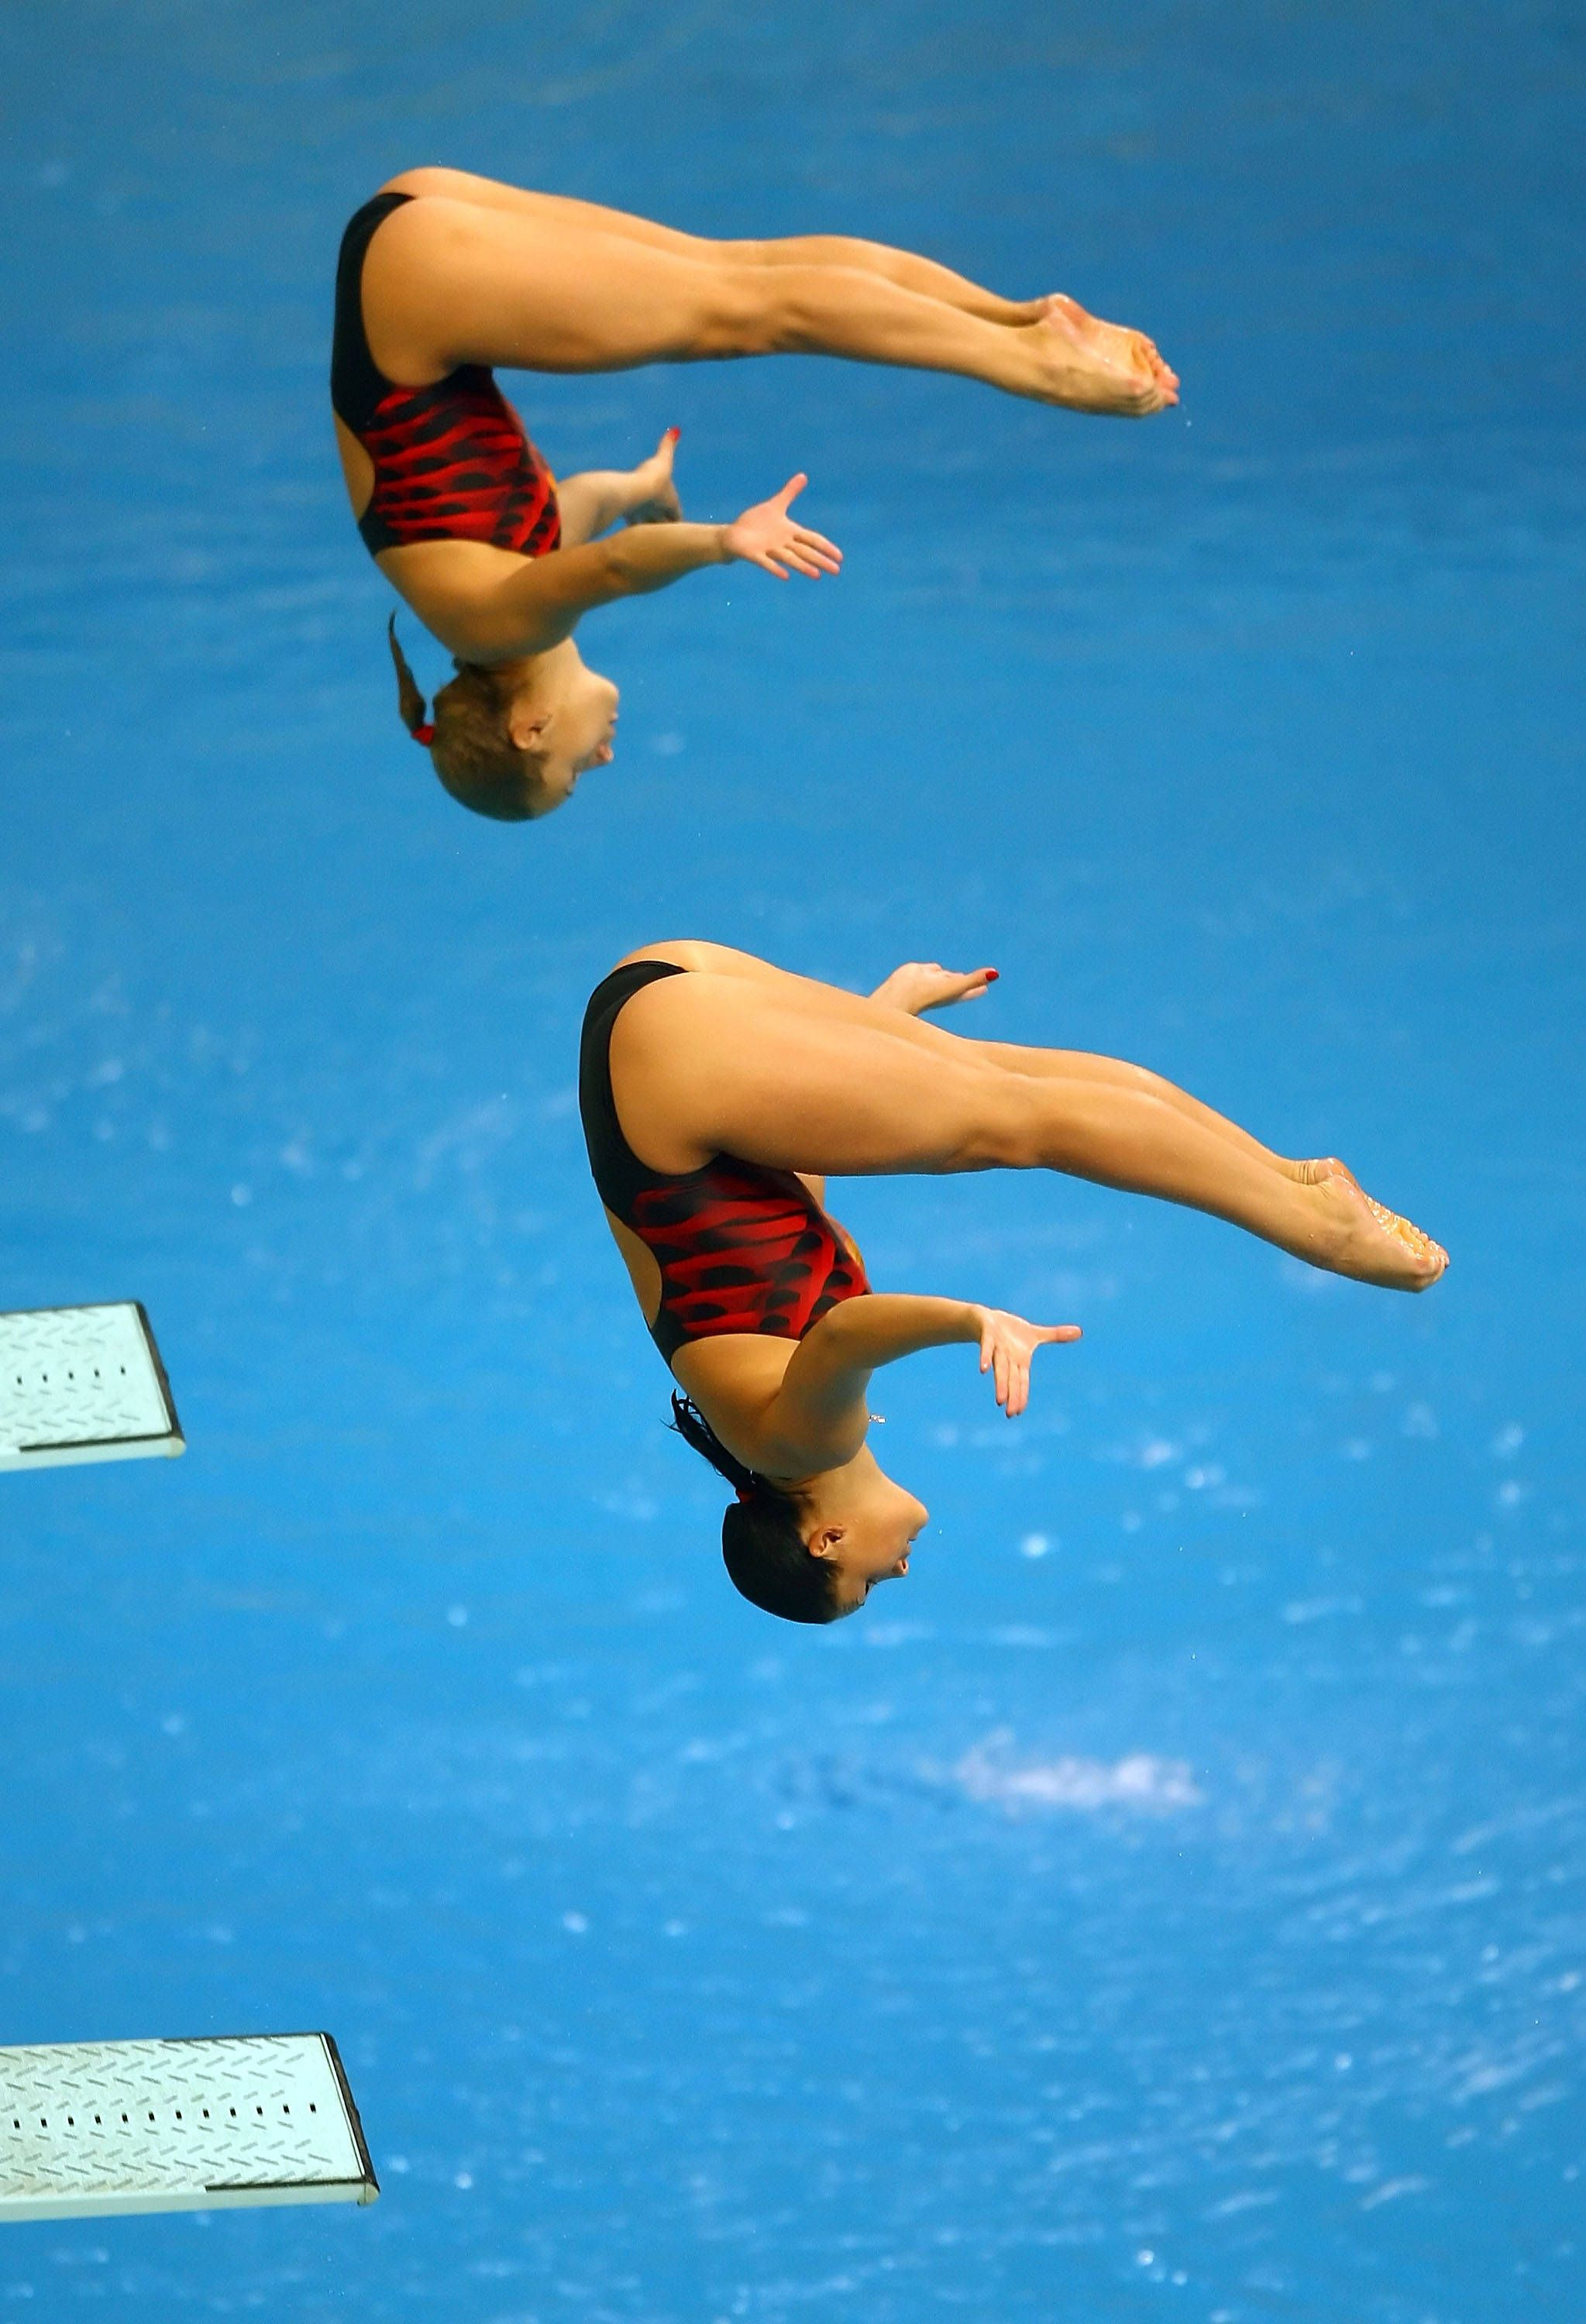 Women S Synchronized Diving Swimming Diving Synchronized Swimming Diving Springboard